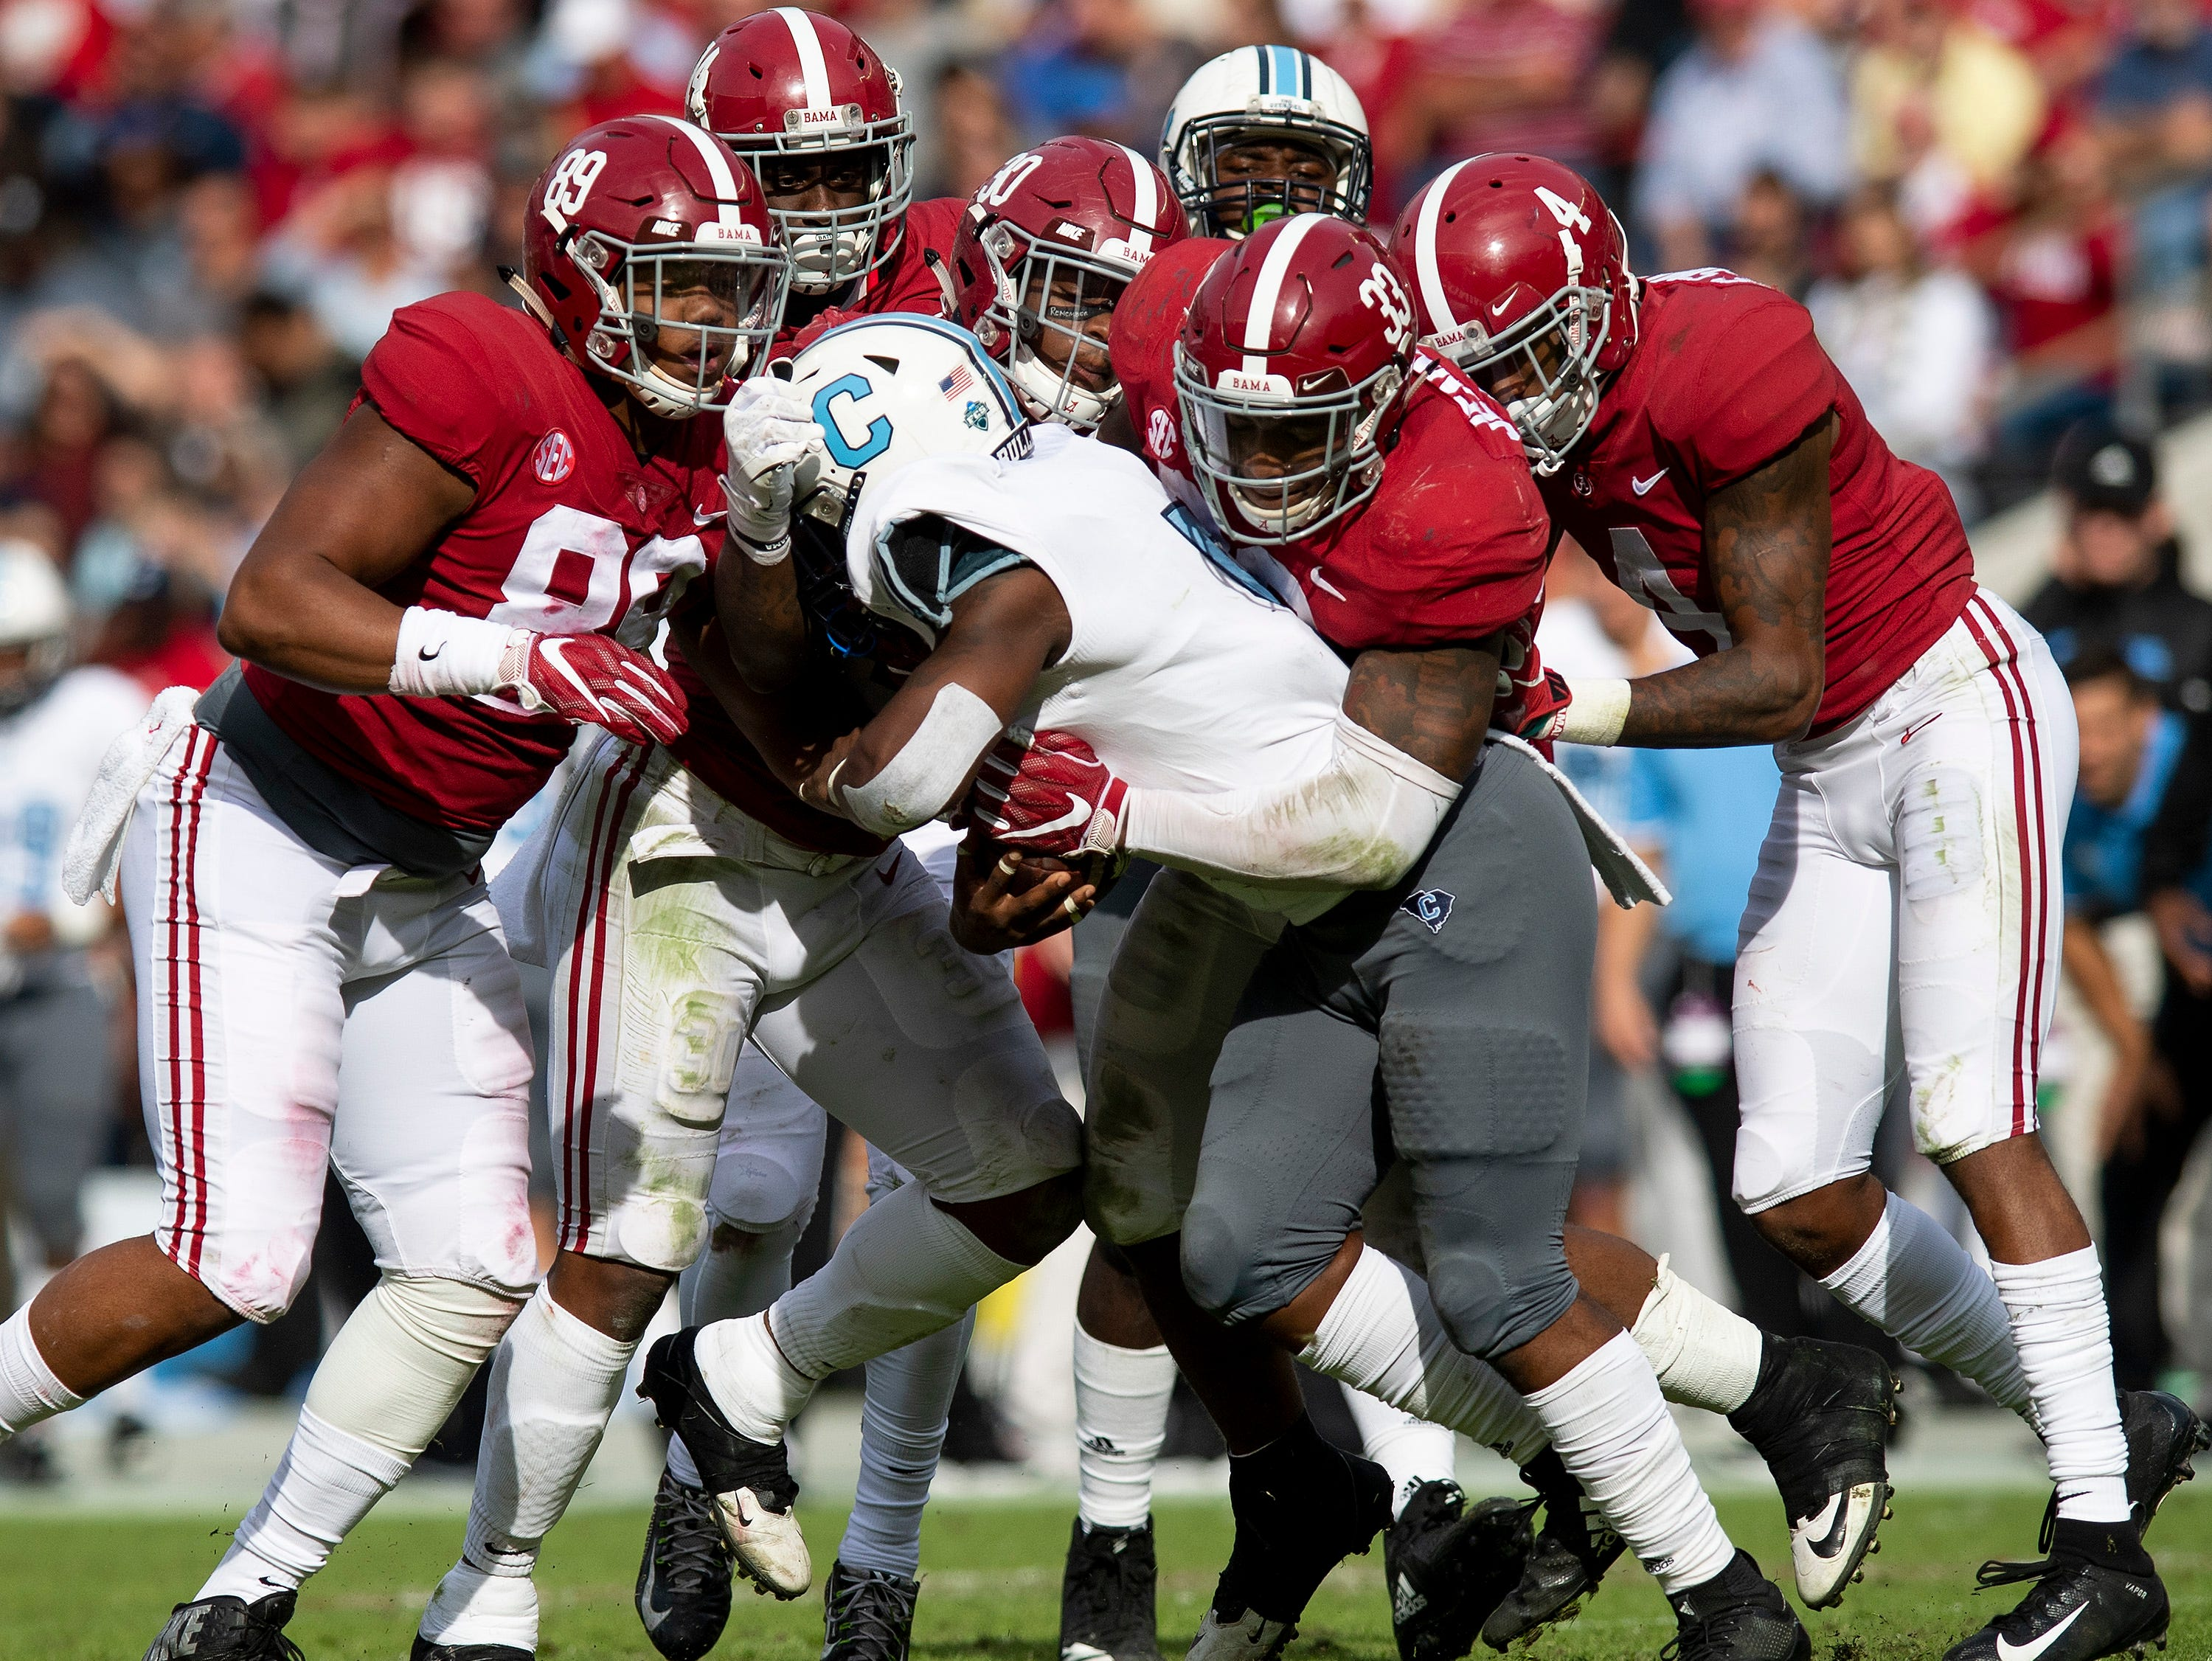 Citadel B-Back Clay Harris (5) is swarmed under by Alabama defensive lineman LaBryan Ray (89), linebacker Anfernee Jennings (33), defensive back Saivion Smith (4), linebacker Mack Wilson (30) and defensive back Deionte Thompson (14) in second half action at Bryant-Denny Stadium in Tuscaloosa, Ala., on Saturday November 17, 2018.